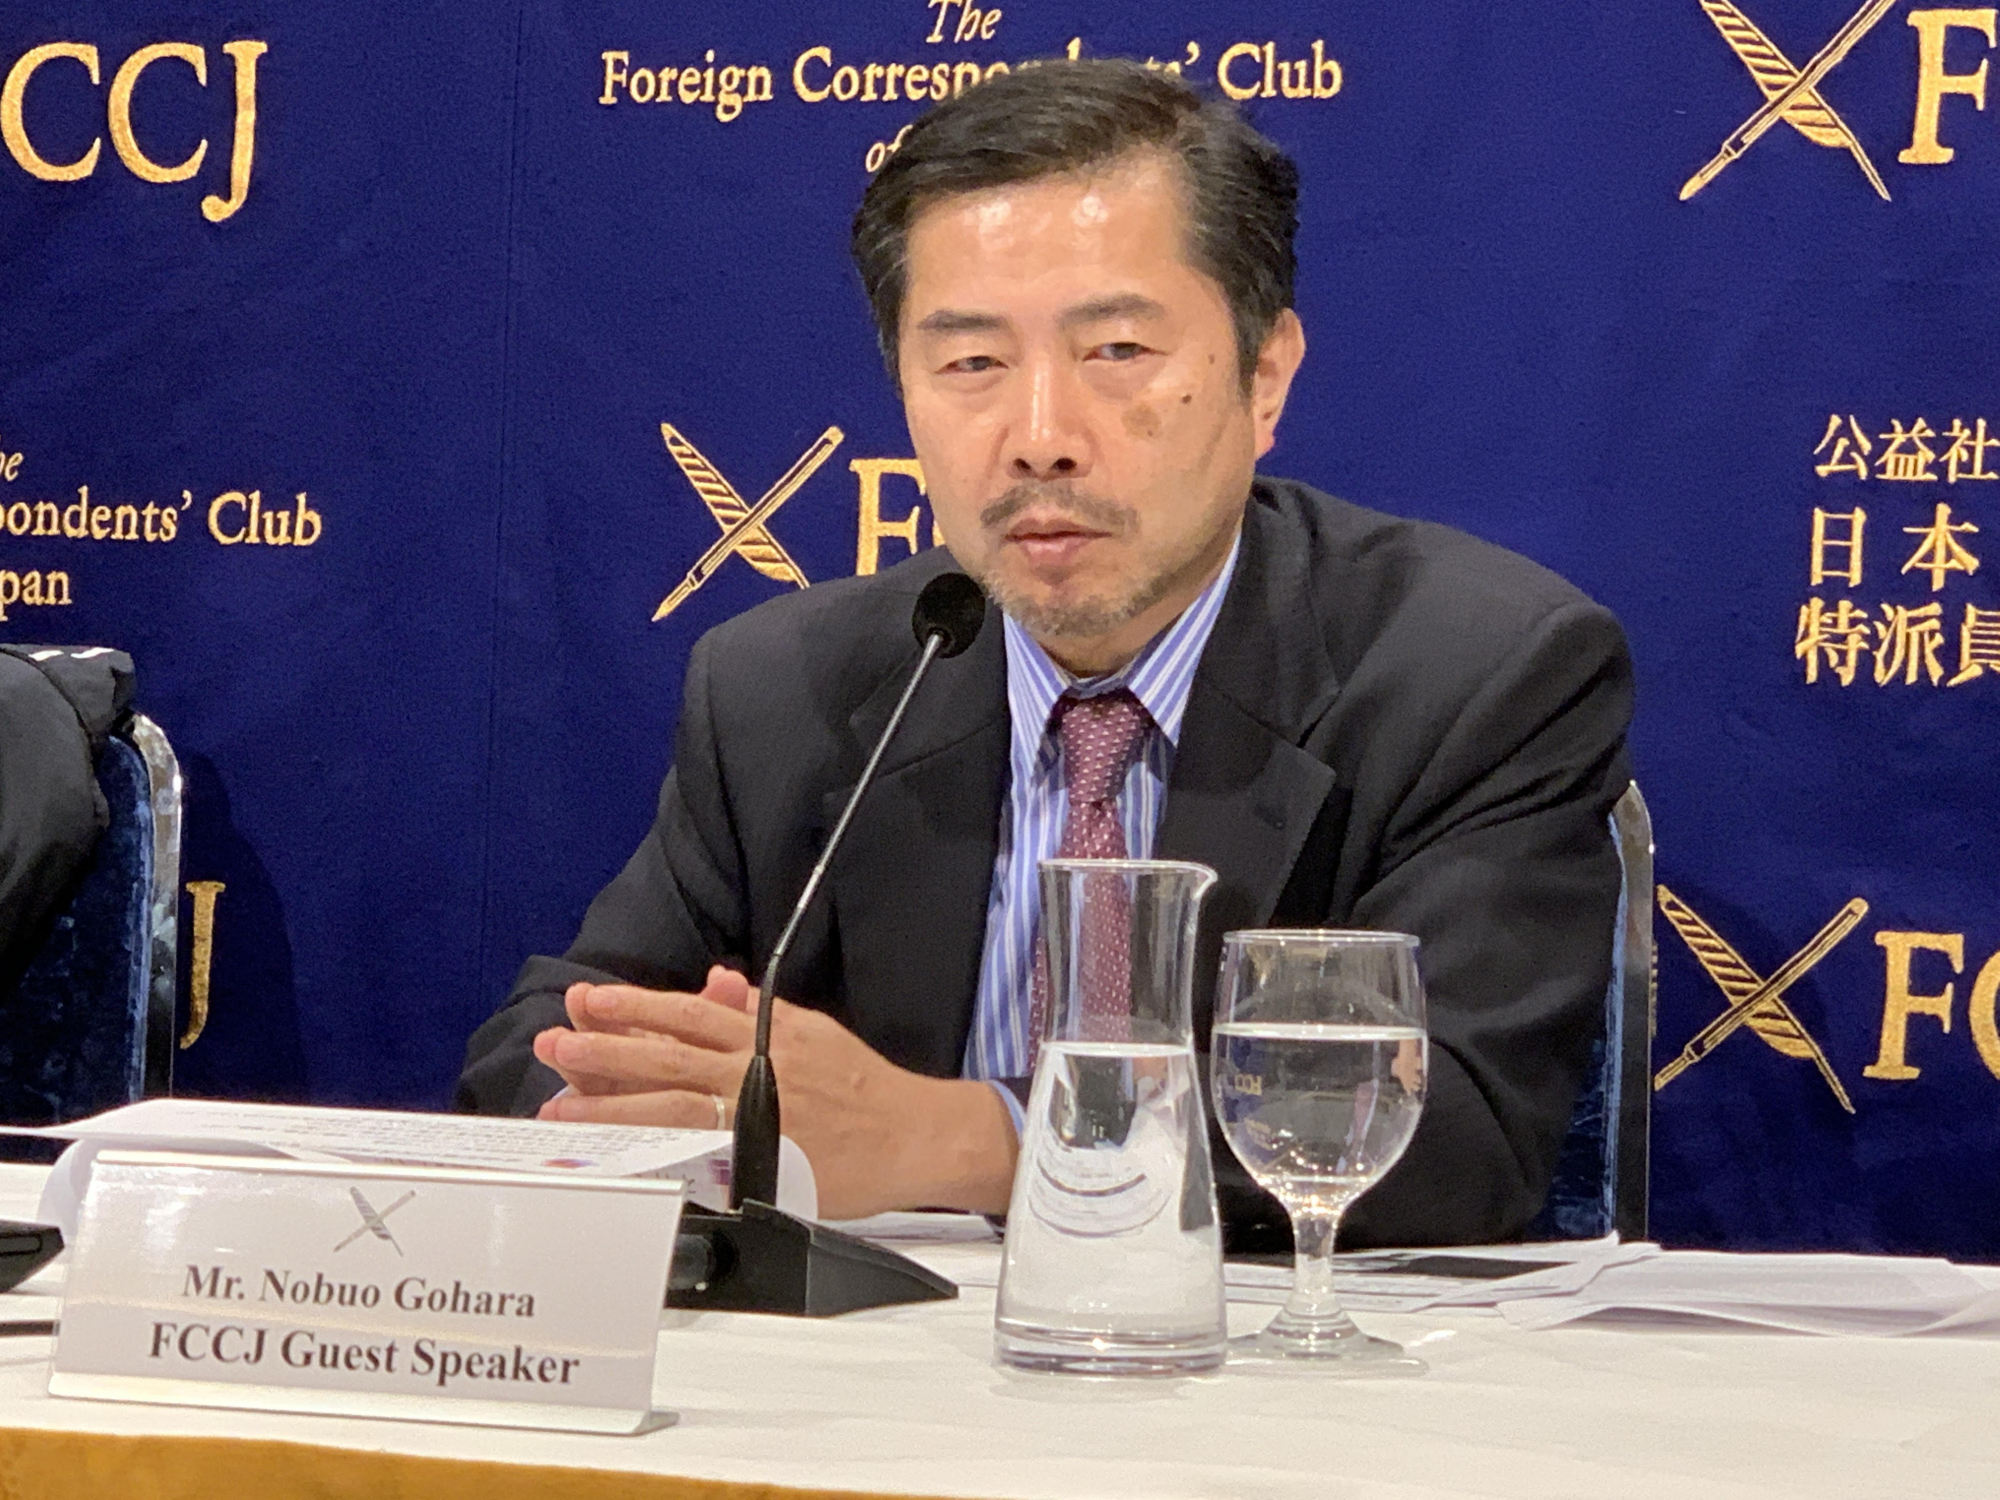 Nobuo Gohara, a lawyer and former prosecutor, discusses the plea bargaining system in relation to the recent arrest of ousted Nissan chief Carlos Ghosn during a news conference Monday at the Foreign Correspondents' Club of Japan in Tokyo. | MAGDALENA OSUMI